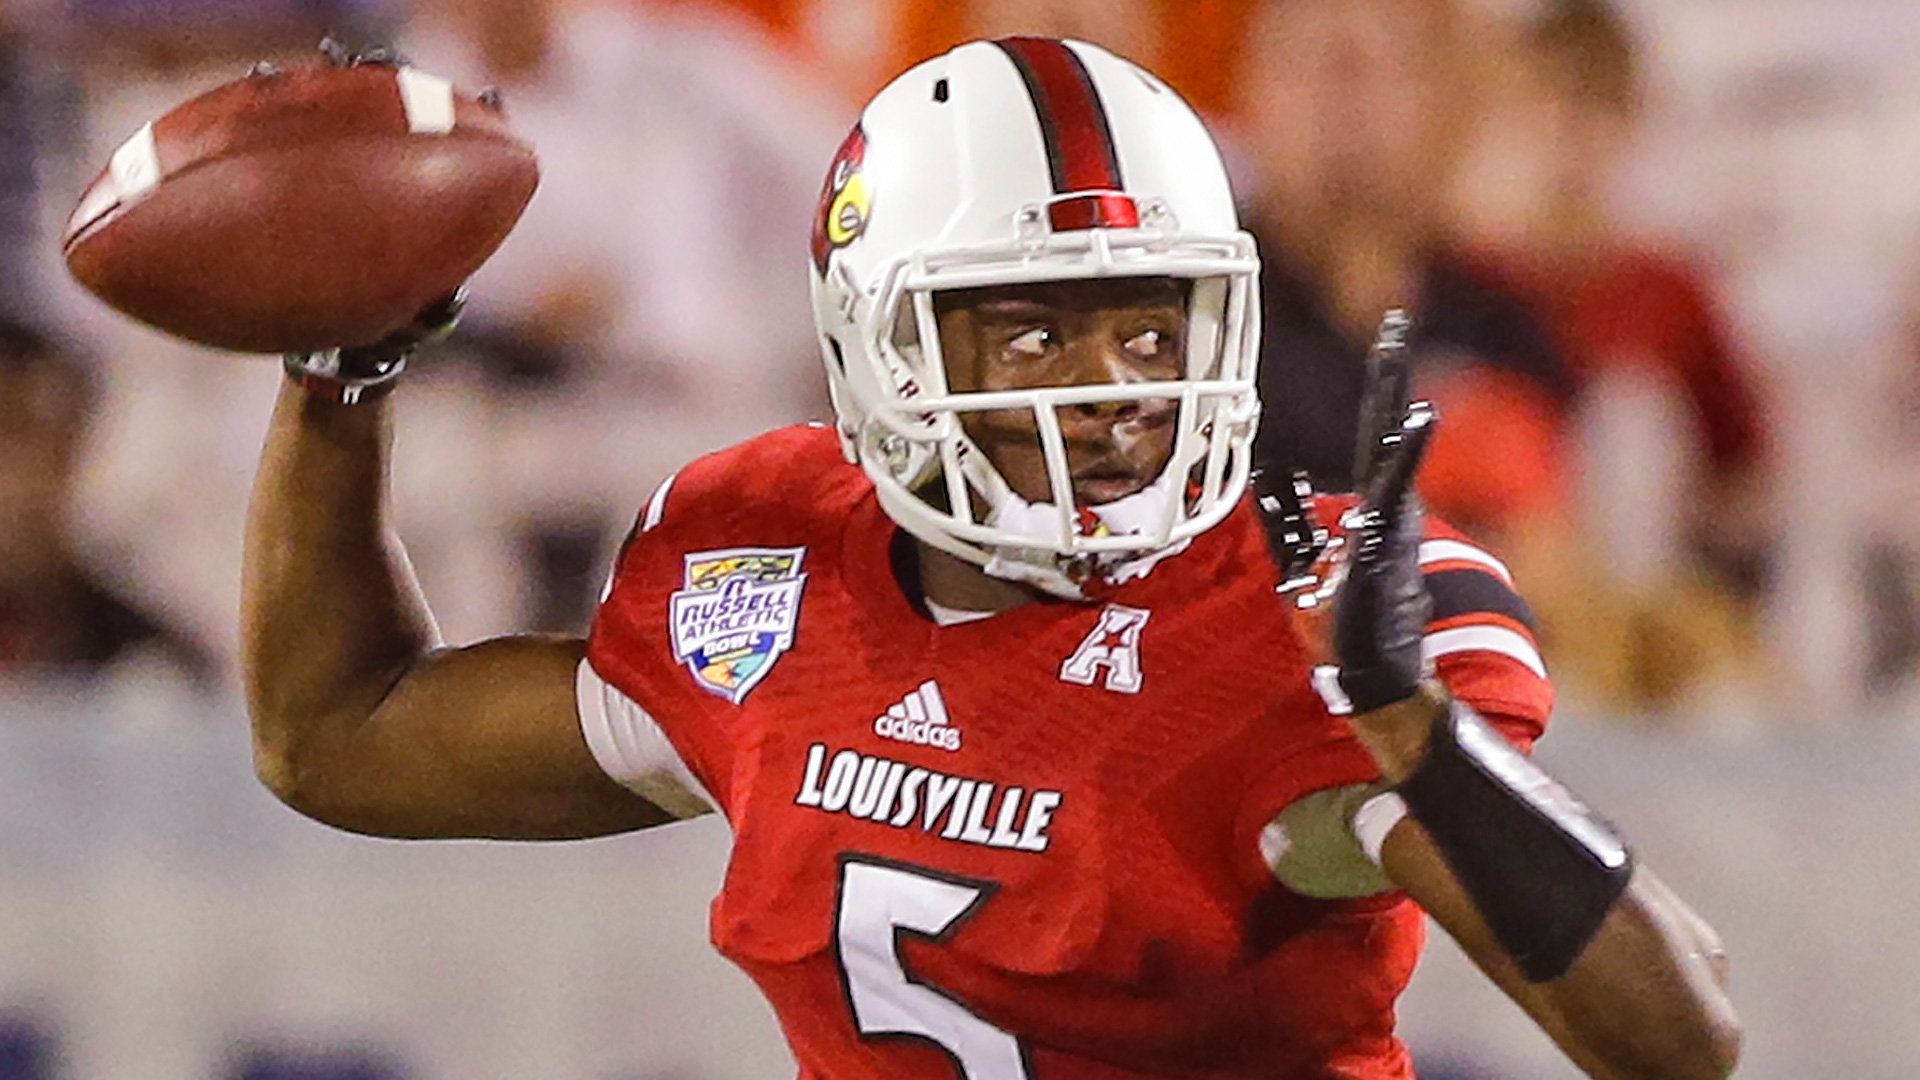 2014 NFL Draft -- Vikings select Teddy Bridgewater with No. 32 pick